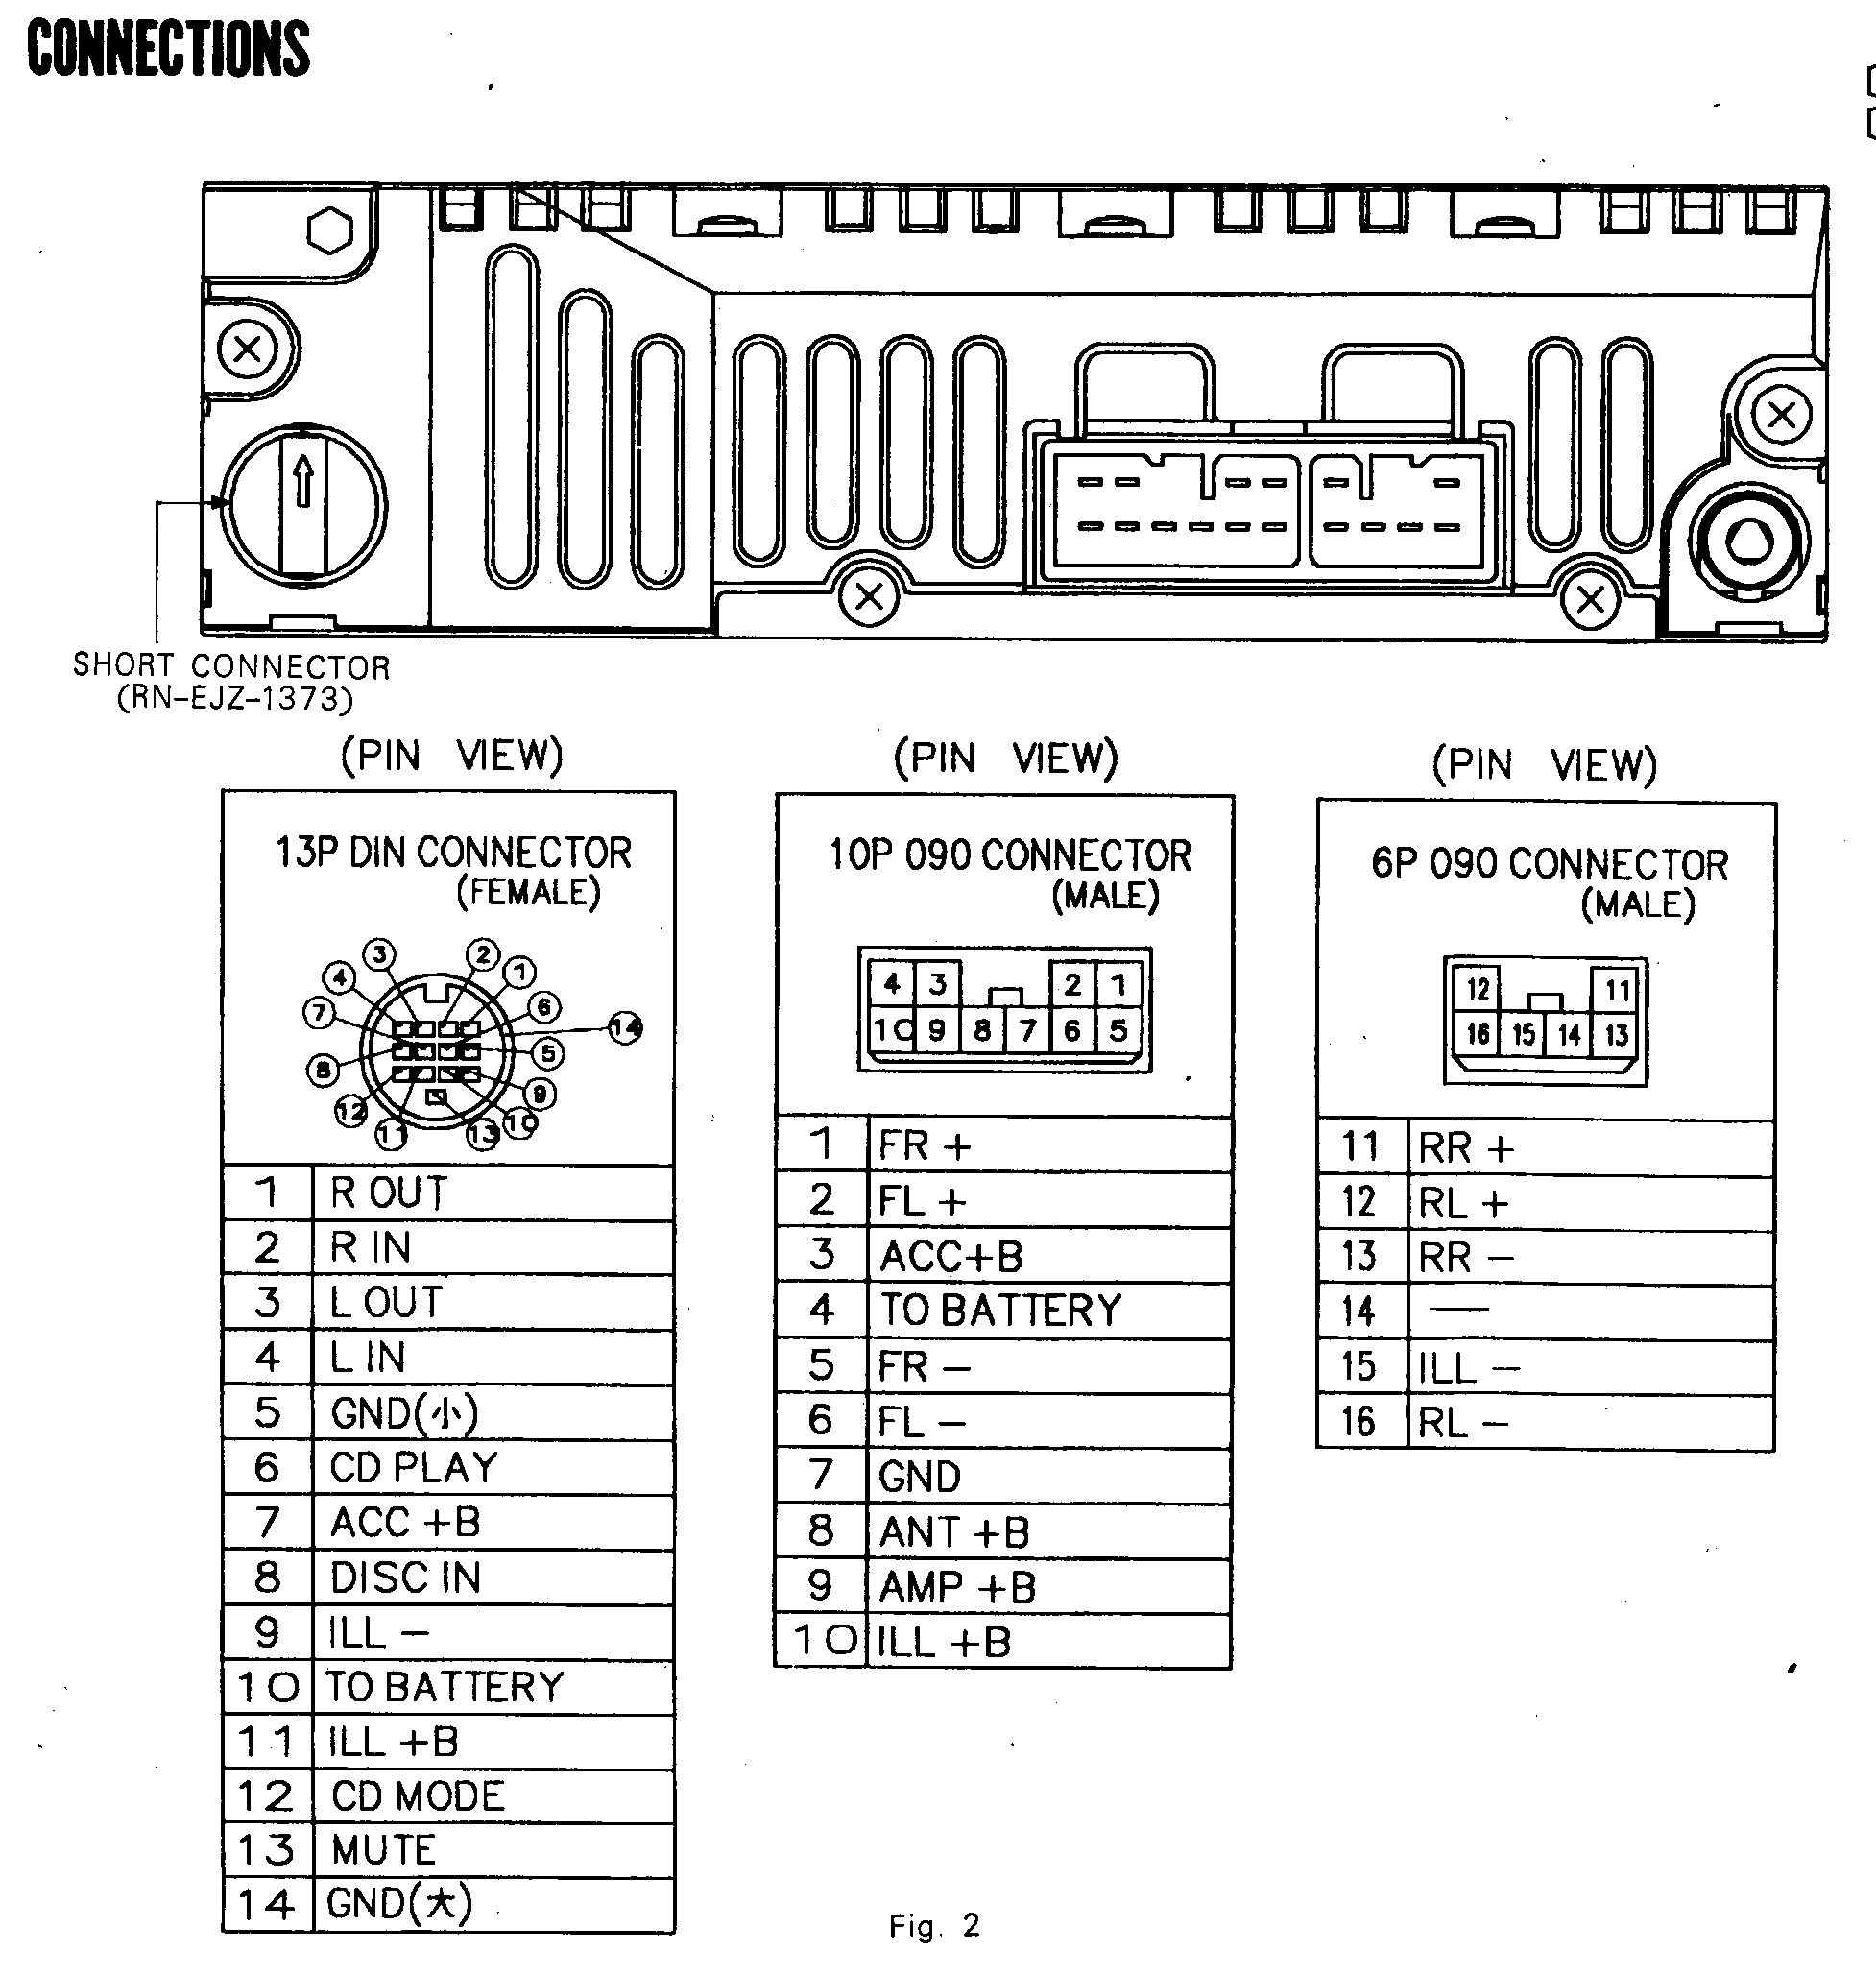 Toyota Radio Wire Harness - Wiring Diagrams Export on 1997 toyota tacoma radio wiring diagram, 2004 toyota tacoma parts, 2008 toyota tacoma radio wiring diagram, 2004 toyota tacoma power steering, 1999 toyota tacoma radio wiring diagram, 2004 toyota tacoma dash lights, 2010 toyota venza radio wiring diagram, 2004 toyota tacoma front wheel bearings, 2004 toyota tacoma fuel tank, 2004 toyota tacoma antenna, 2007 toyota fj cruiser radio wiring diagram, 2004 toyota tacoma door diagram, 2003 toyota tacoma radio wiring diagram,